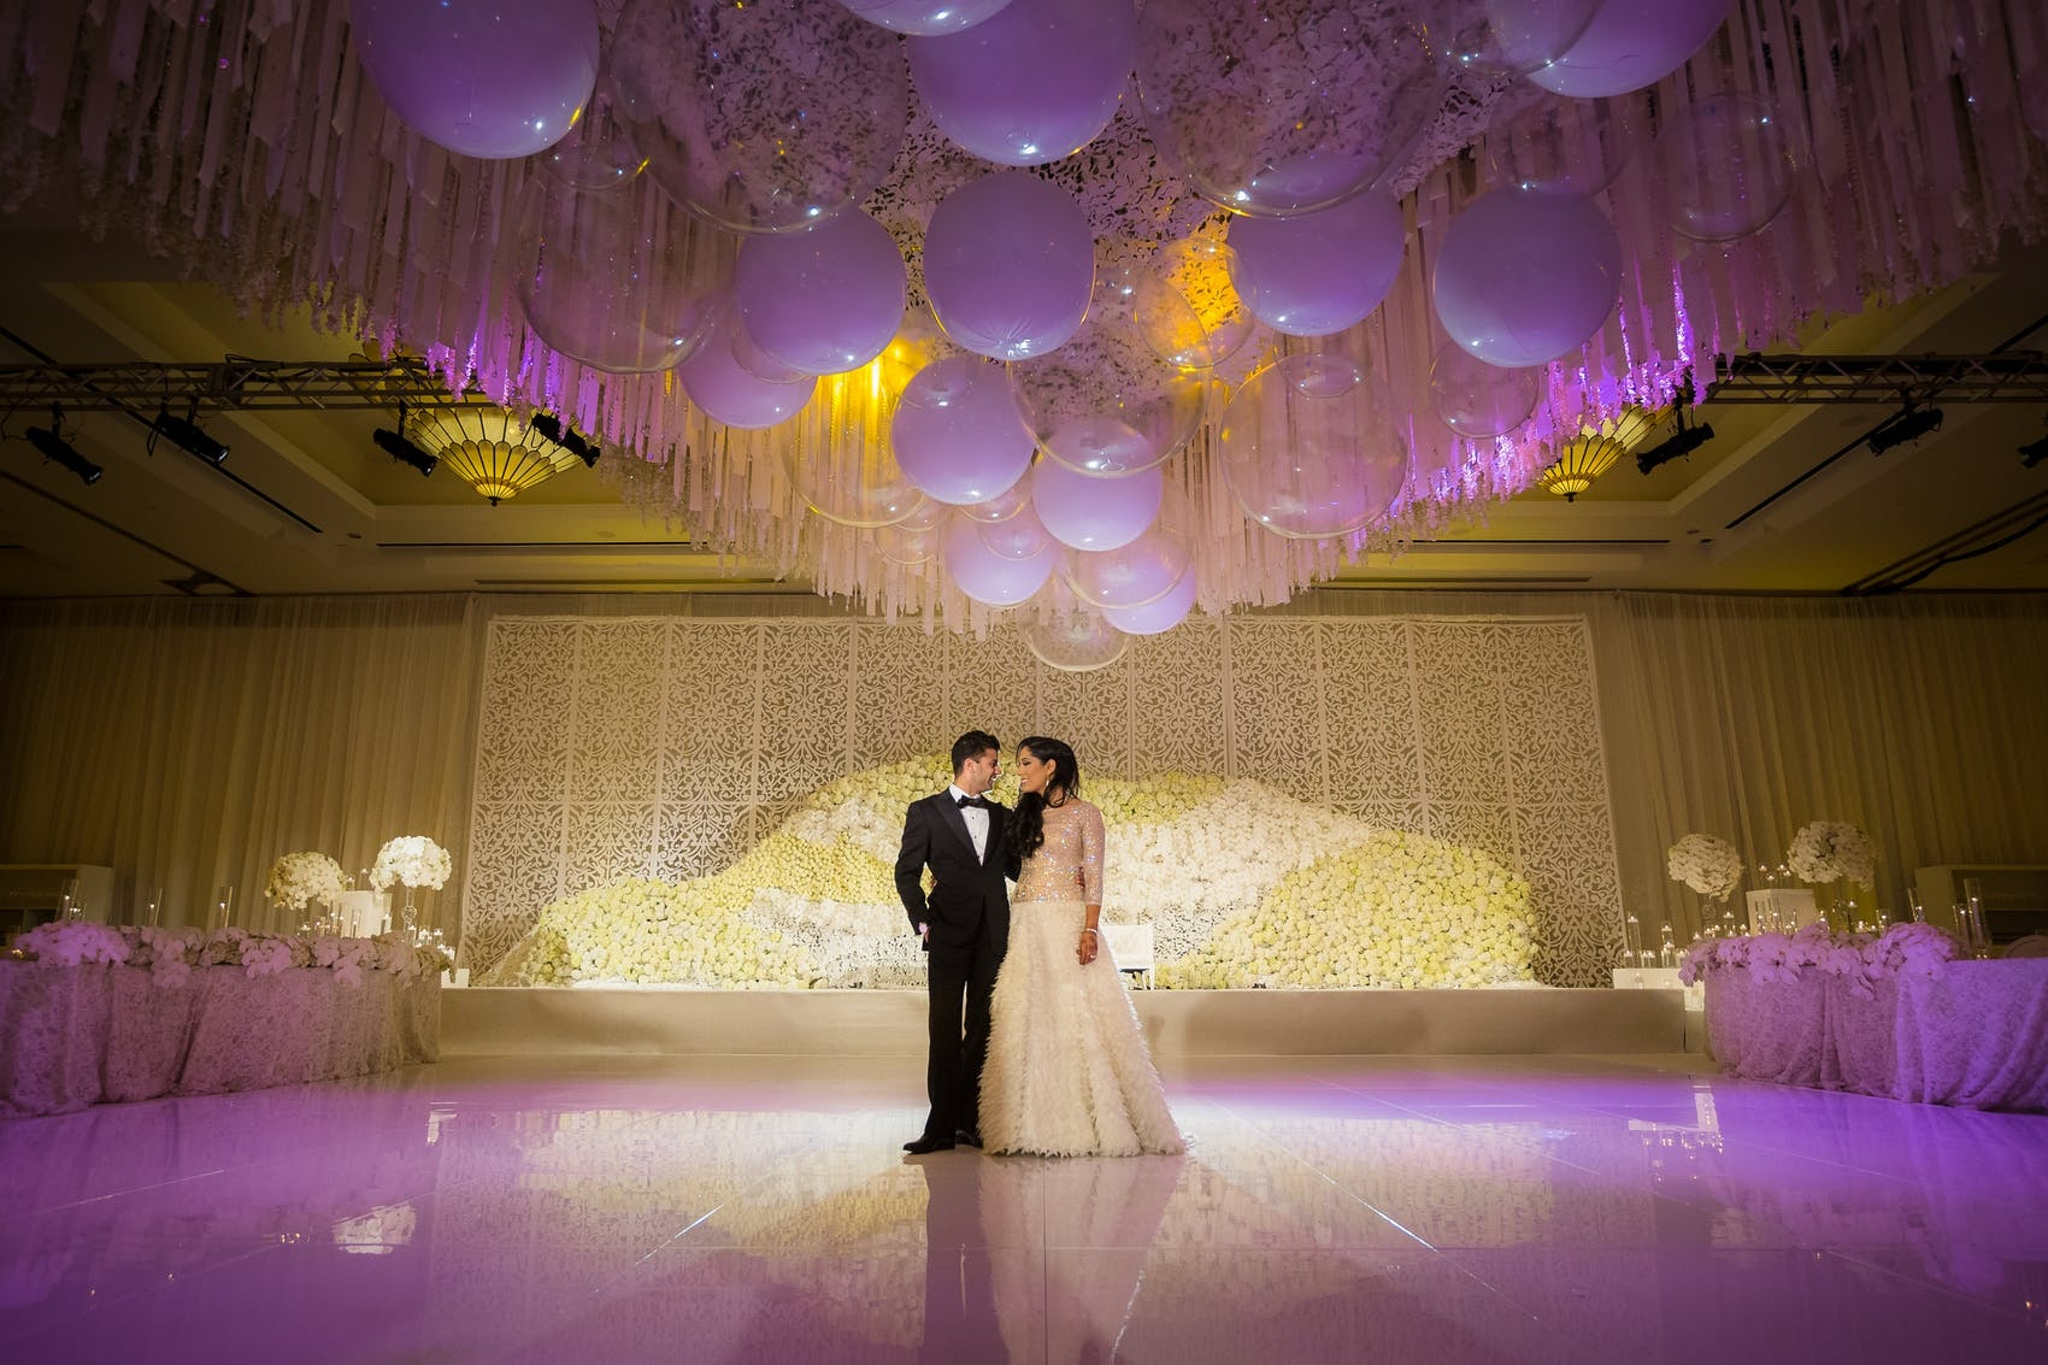 10 Wedding Ceiling Decorations That Will Wow Your Guests Partyslate